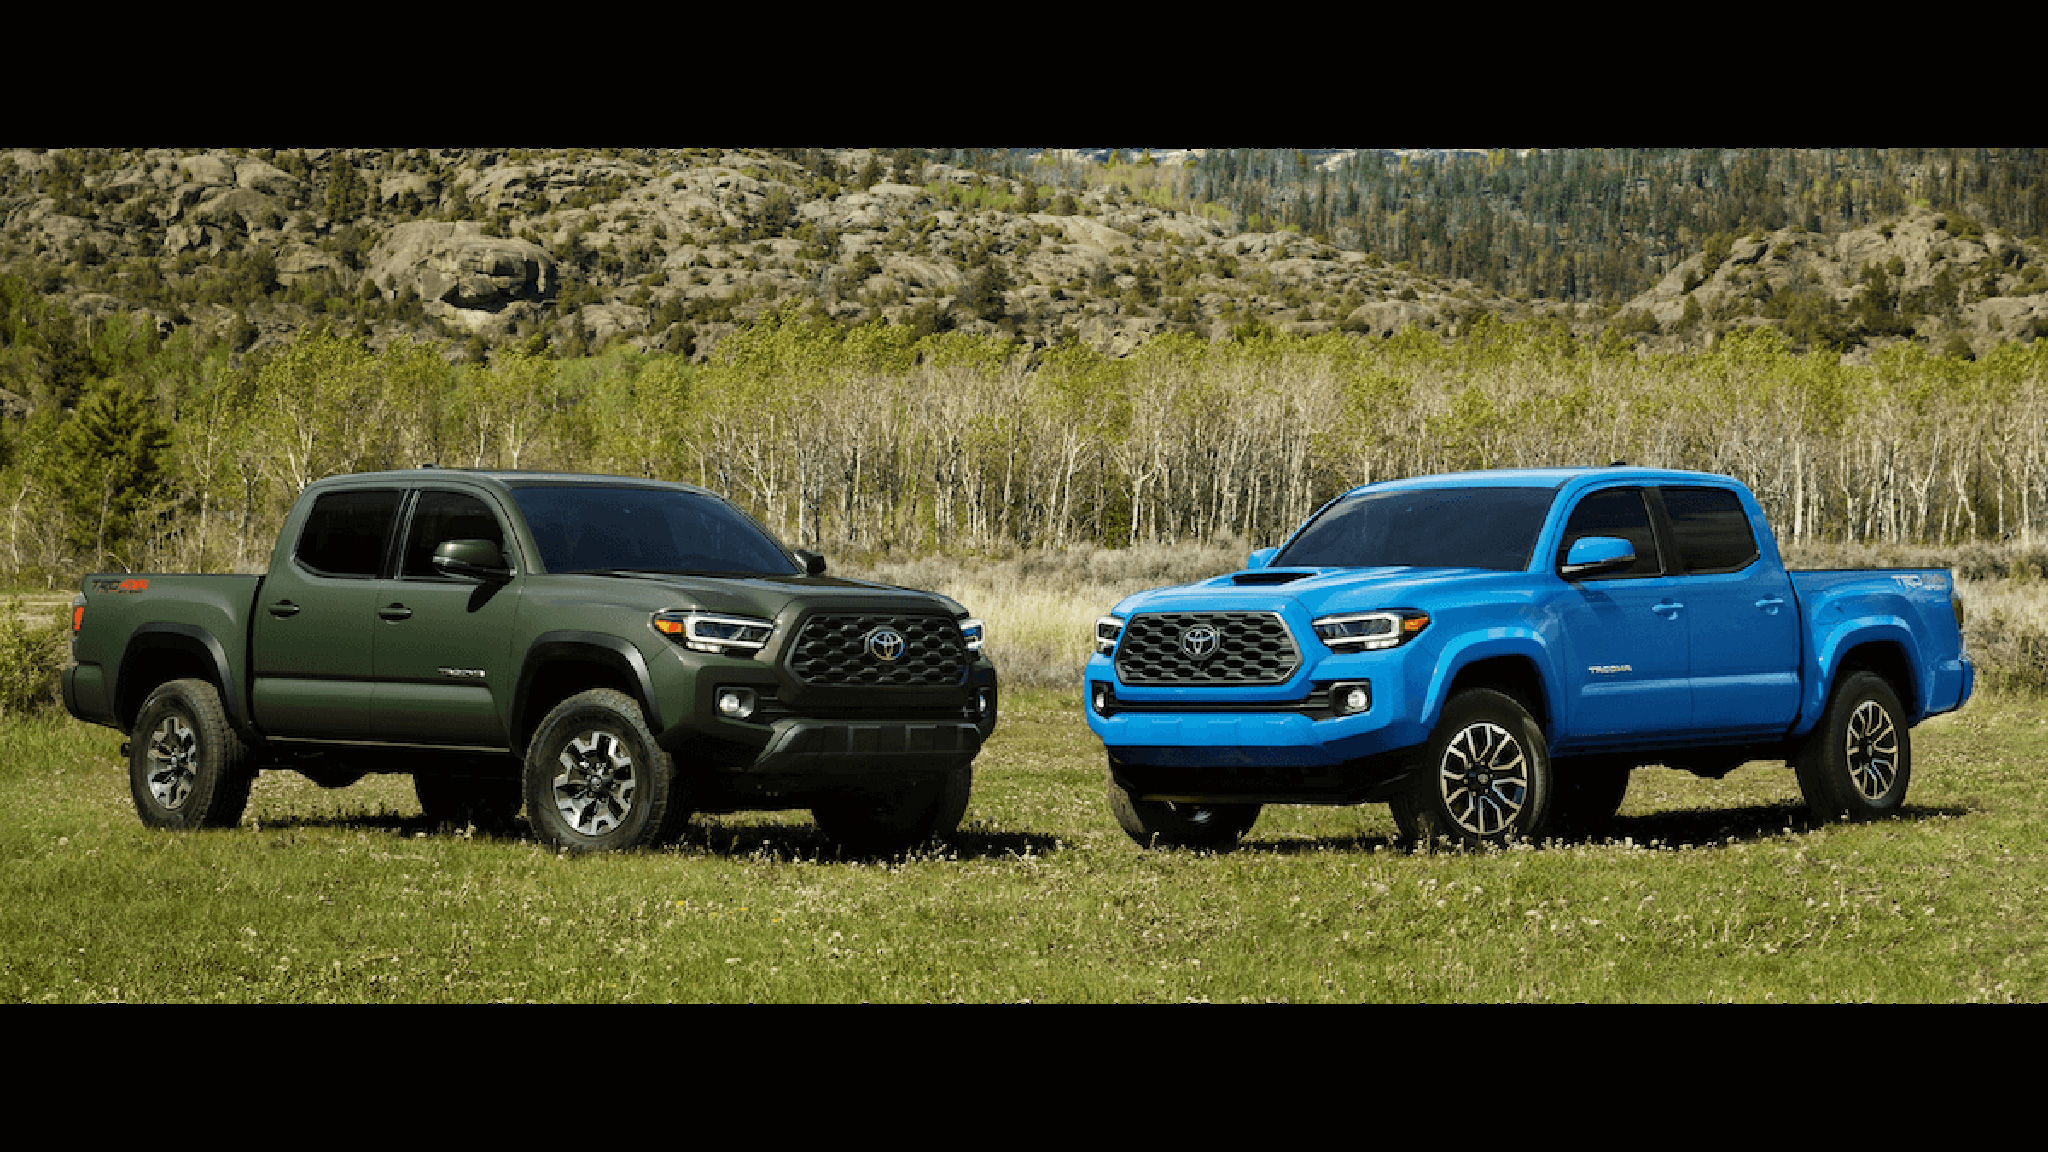 2021 Toyota Tacoma Trim Levels: Every Variant and Layout